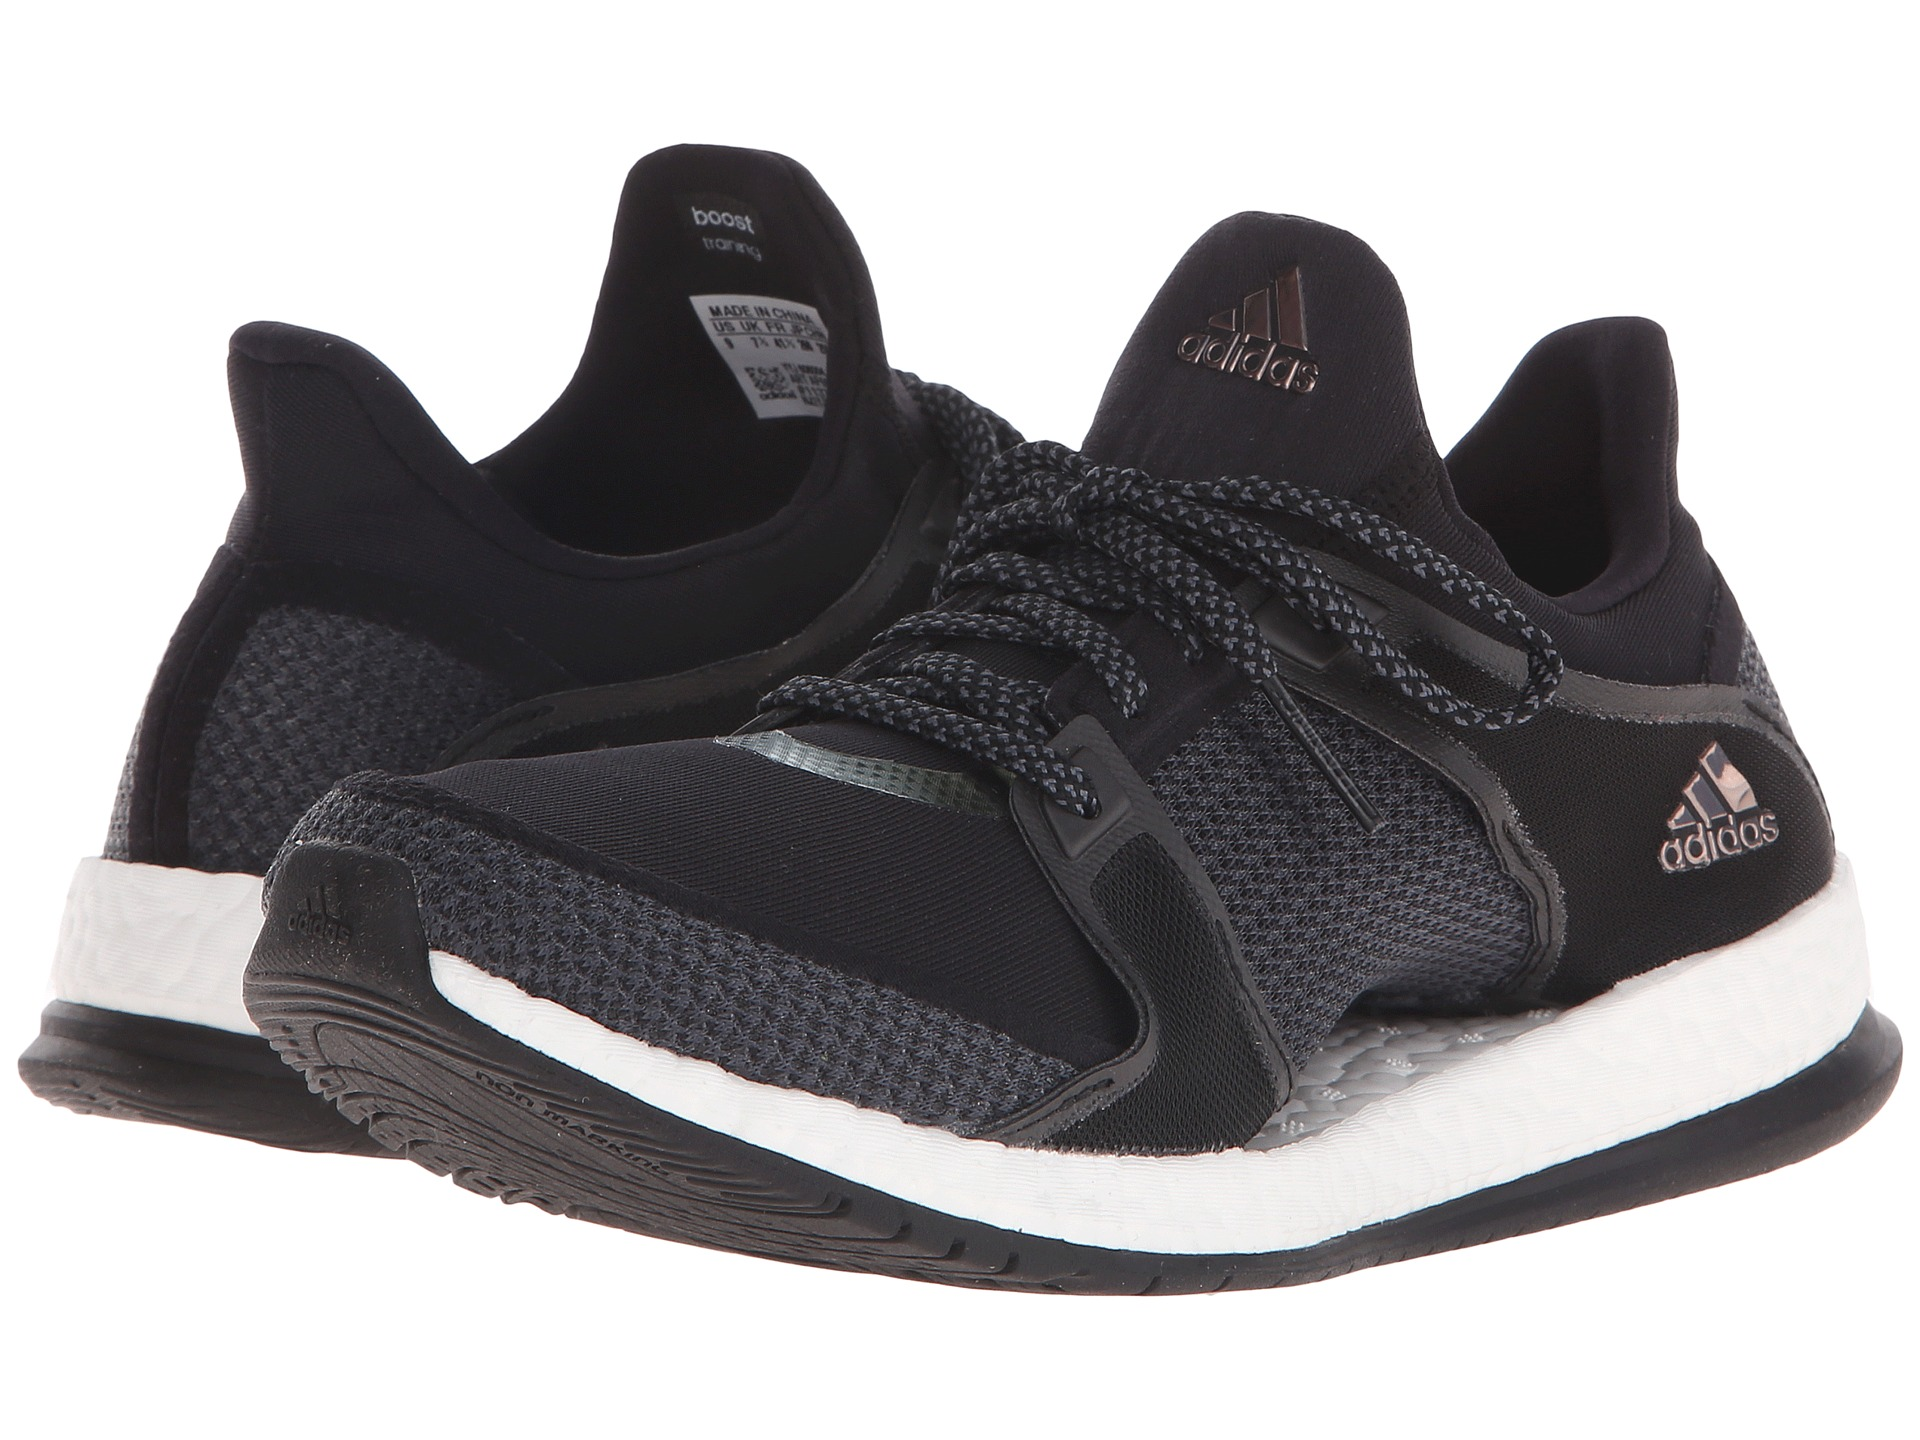 adidas pure boost x trainer free shipping. Black Bedroom Furniture Sets. Home Design Ideas